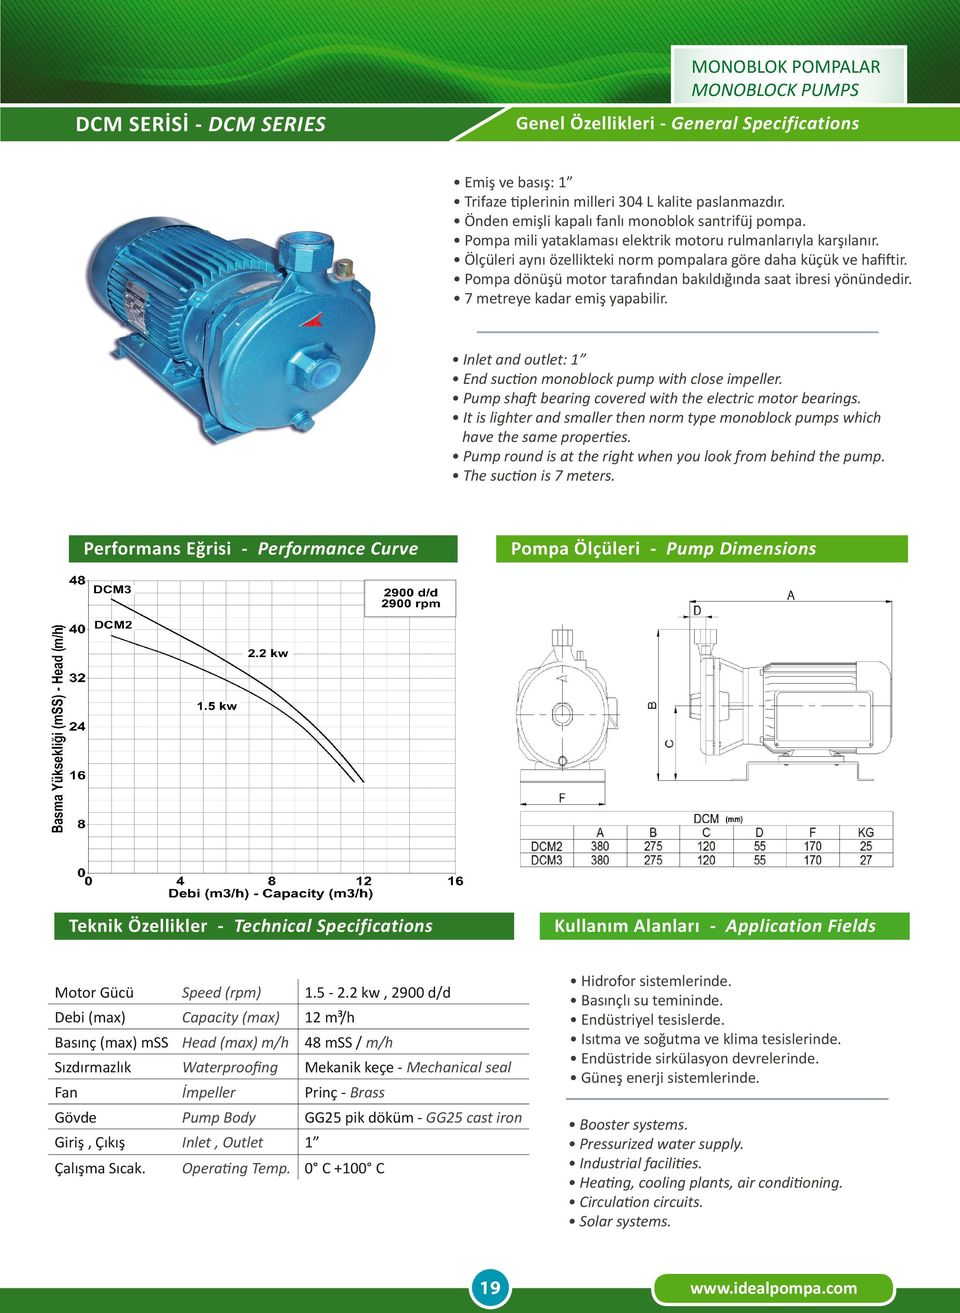 It is lighter and smaller then norm type monoblock pumps which have the same properties. Pump round is at the right when you look from behind the pump. Motor Gücü Speed (rpm) 1.5-2.